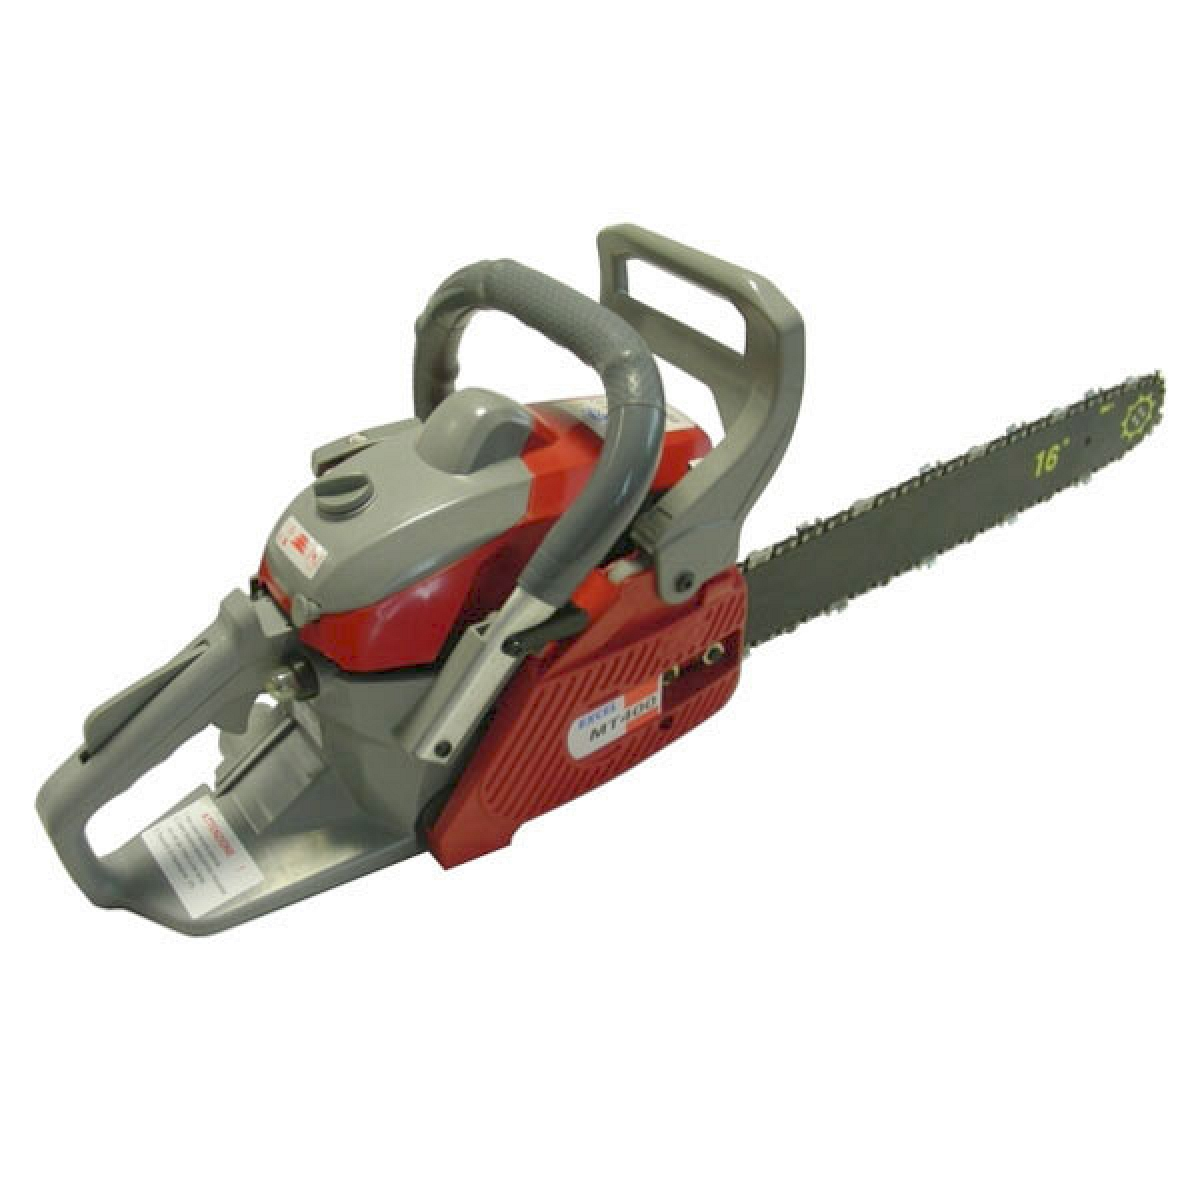 Excel mt 400 exploded chainsaw 37,2 cc with 40-cm bar Excel